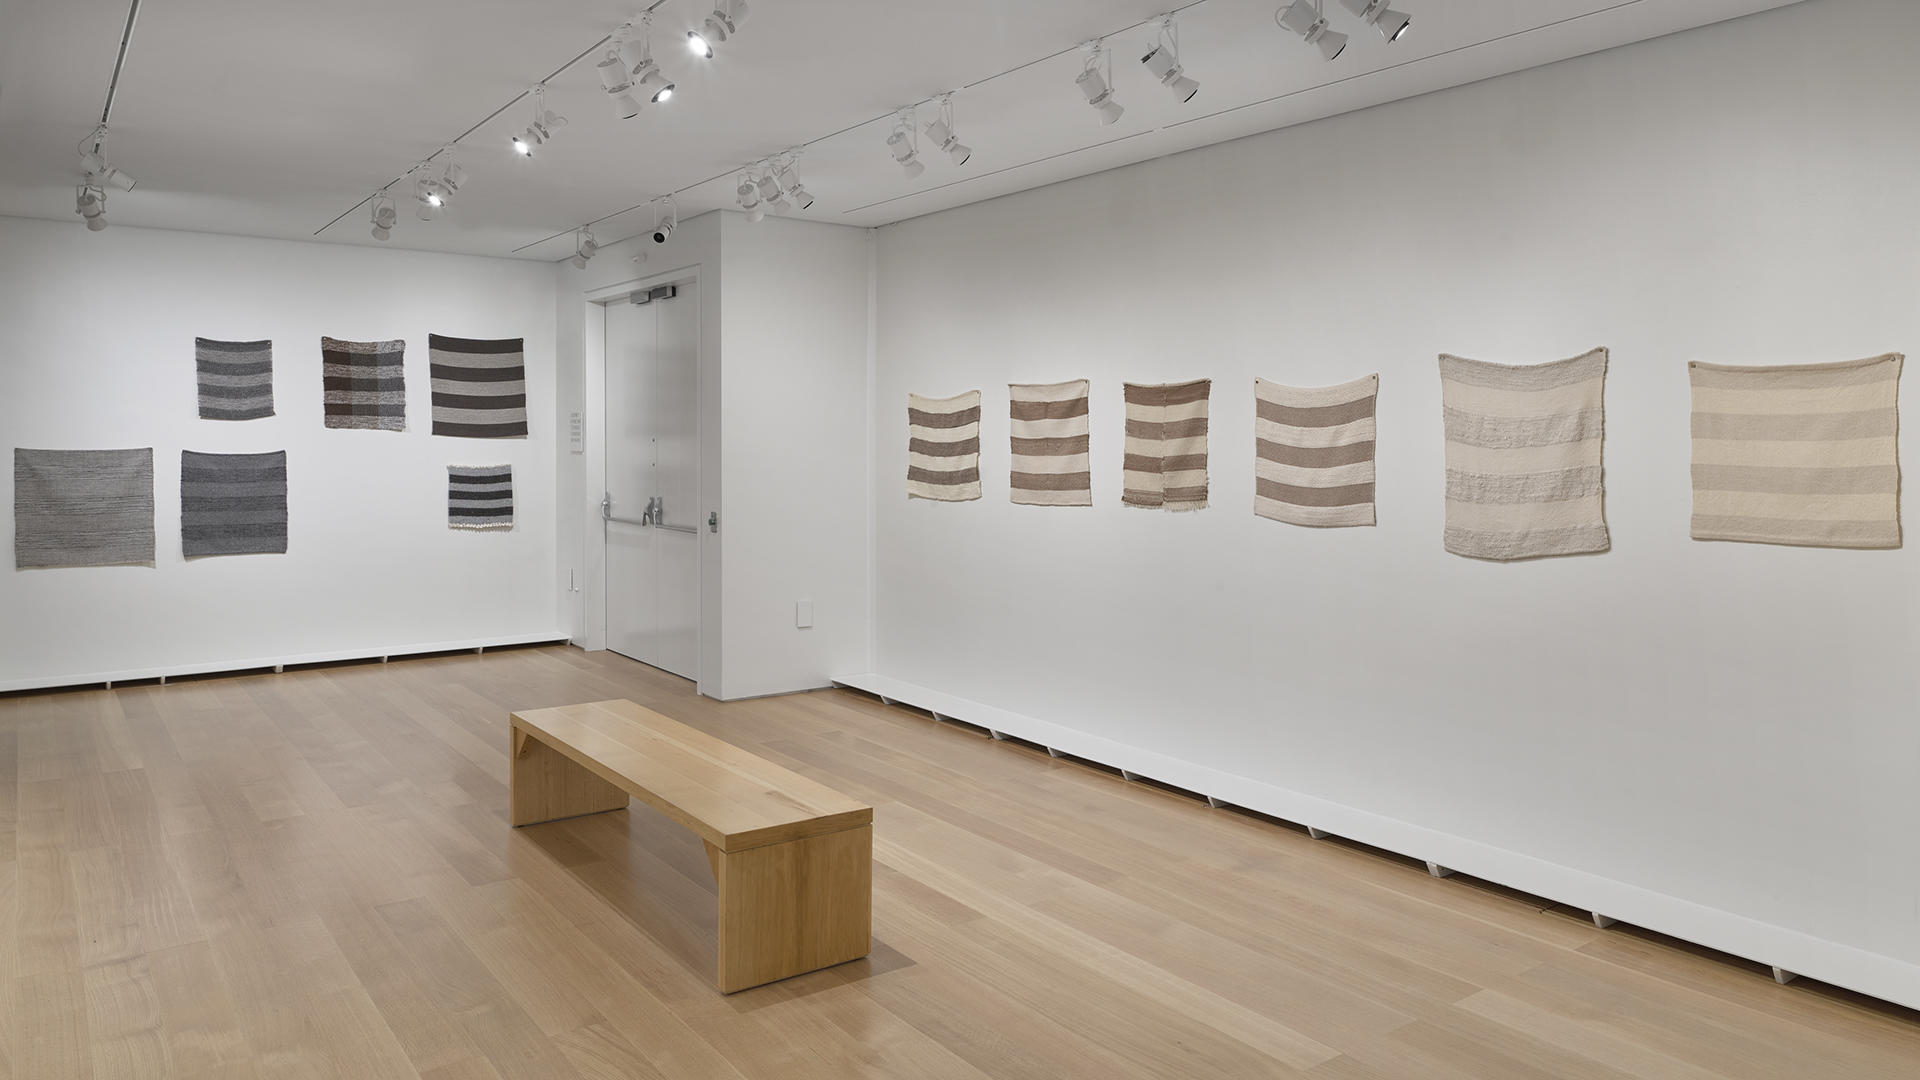 Photo by Stewart Clements. Standard Incomparable (partial), organized by Helen Mirra, 2015-2016. Installation view: Common Threads: Weaving Stories Across Time, Isabella Stewart Gardner Museum, Boston.